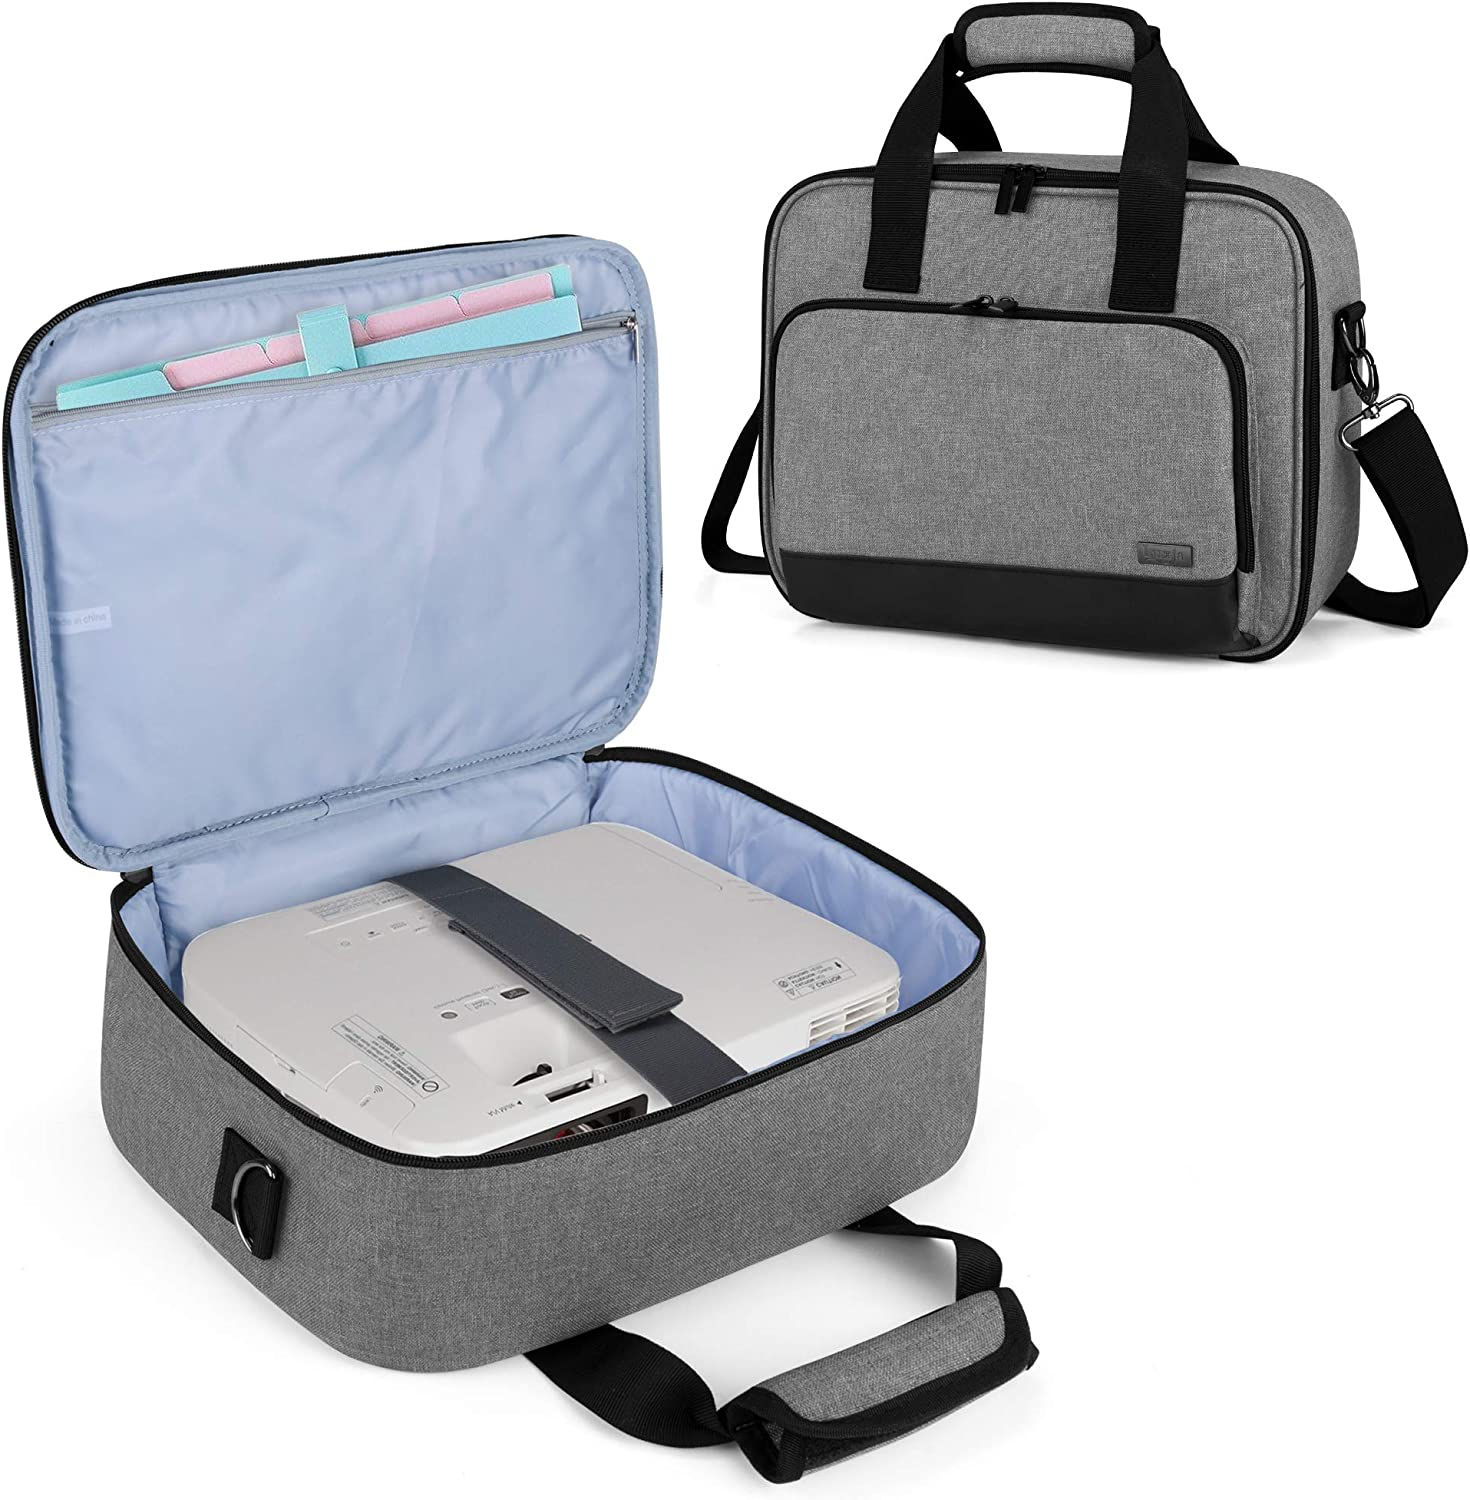 Luxja Projector Case, Projector Bag with Accessories Storage Pockets (Compatible with Most Major Projectors), Medium(13.75 x 10.5 x 4.5 Inches), Gray